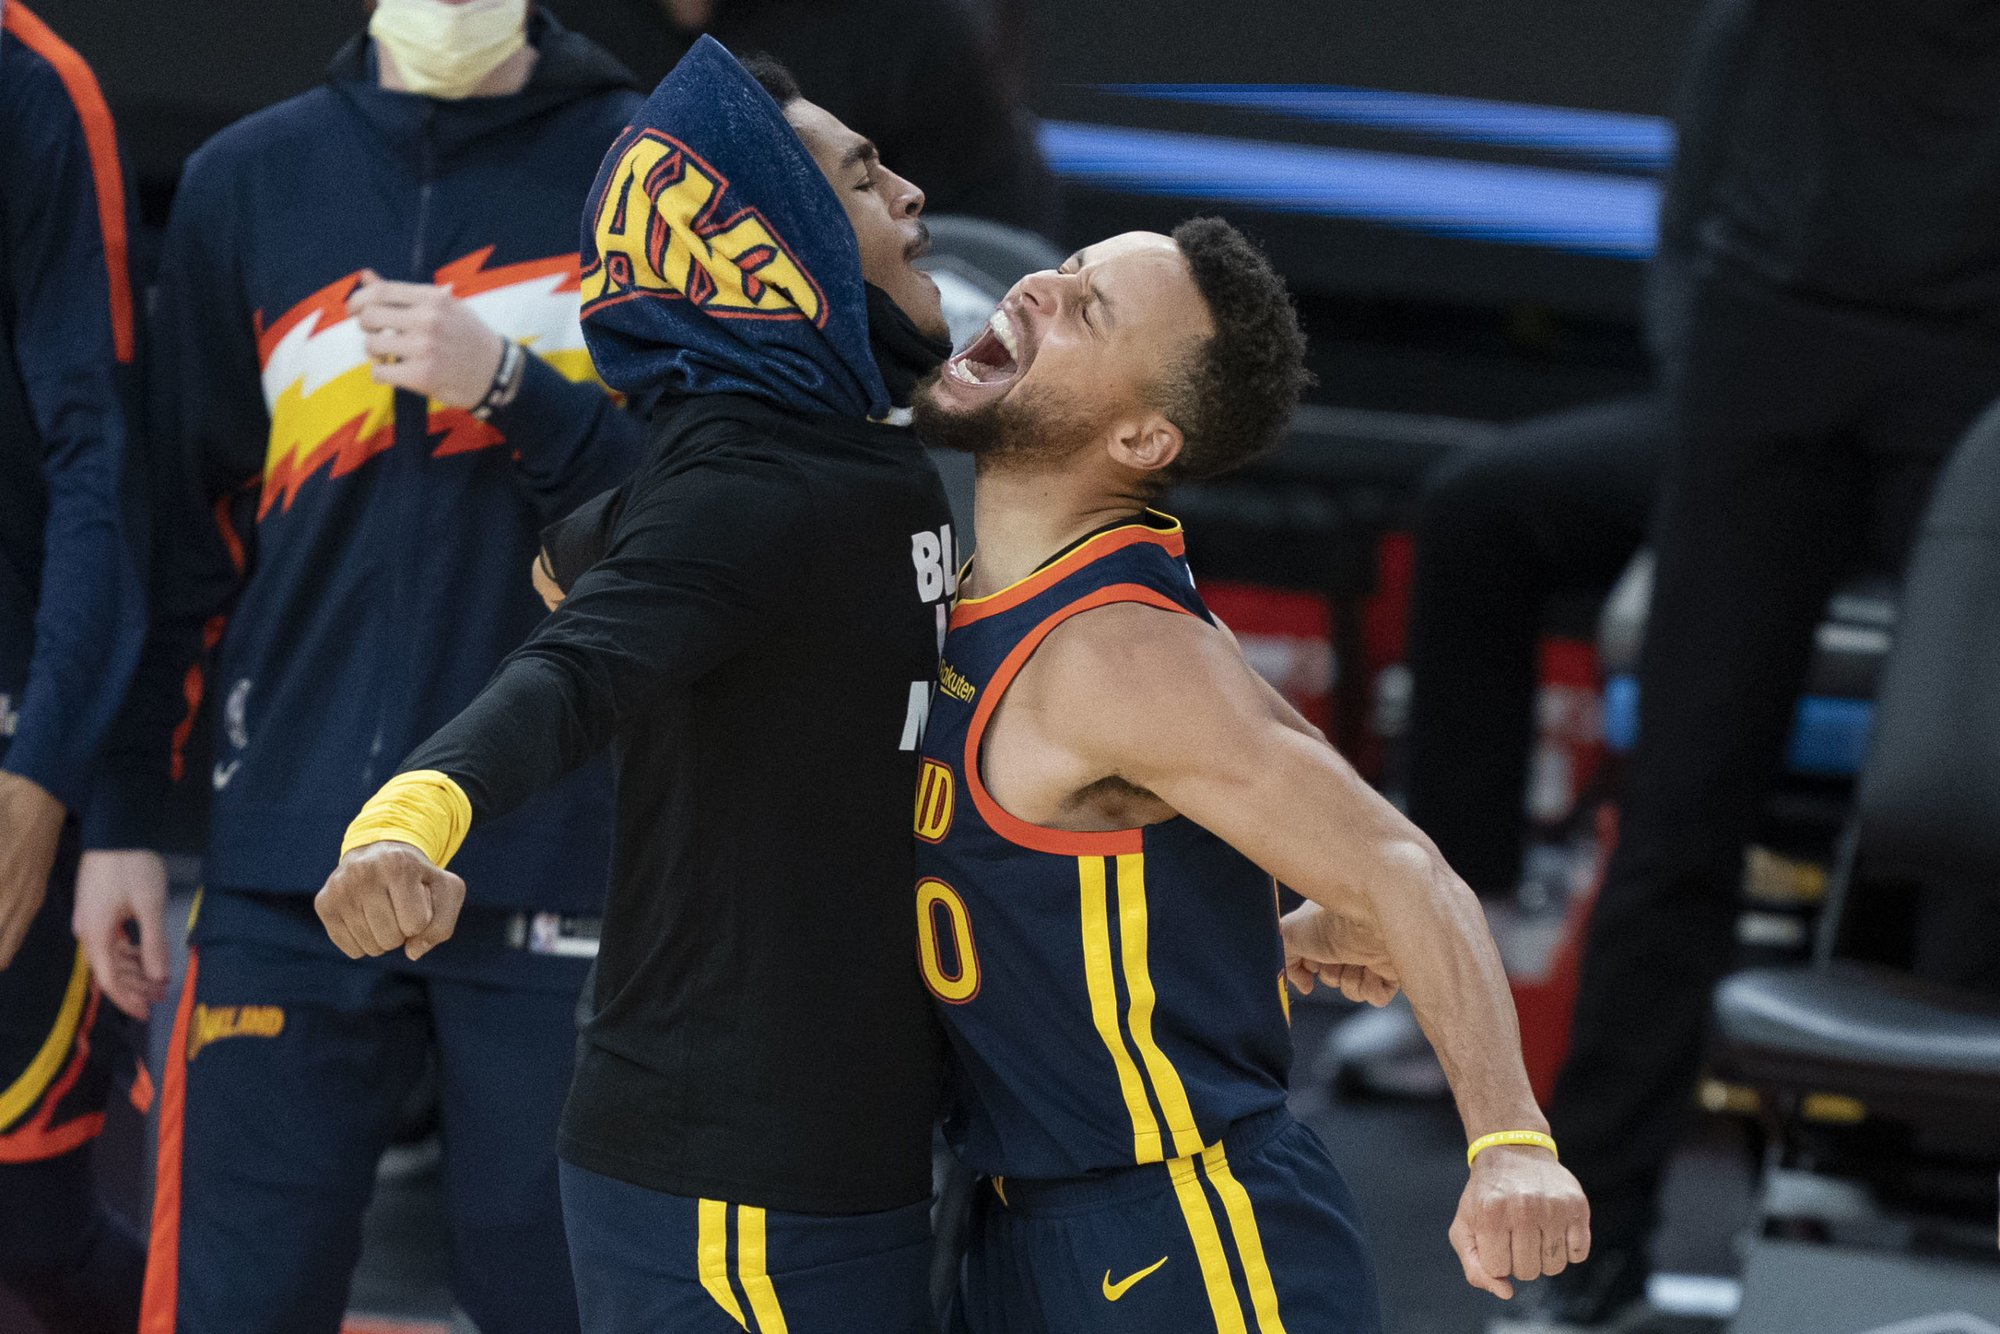 January 25, 2021; San Francisco, California, USA; Golden State Warriors guard Jordan Poole (left) celebrates with guard Stephen Curry (right) against the Minnesota Timberwolves during the fourth quarter at Chase Center. Mandatory Credit: Kyle Terada-USA TODAY Sports